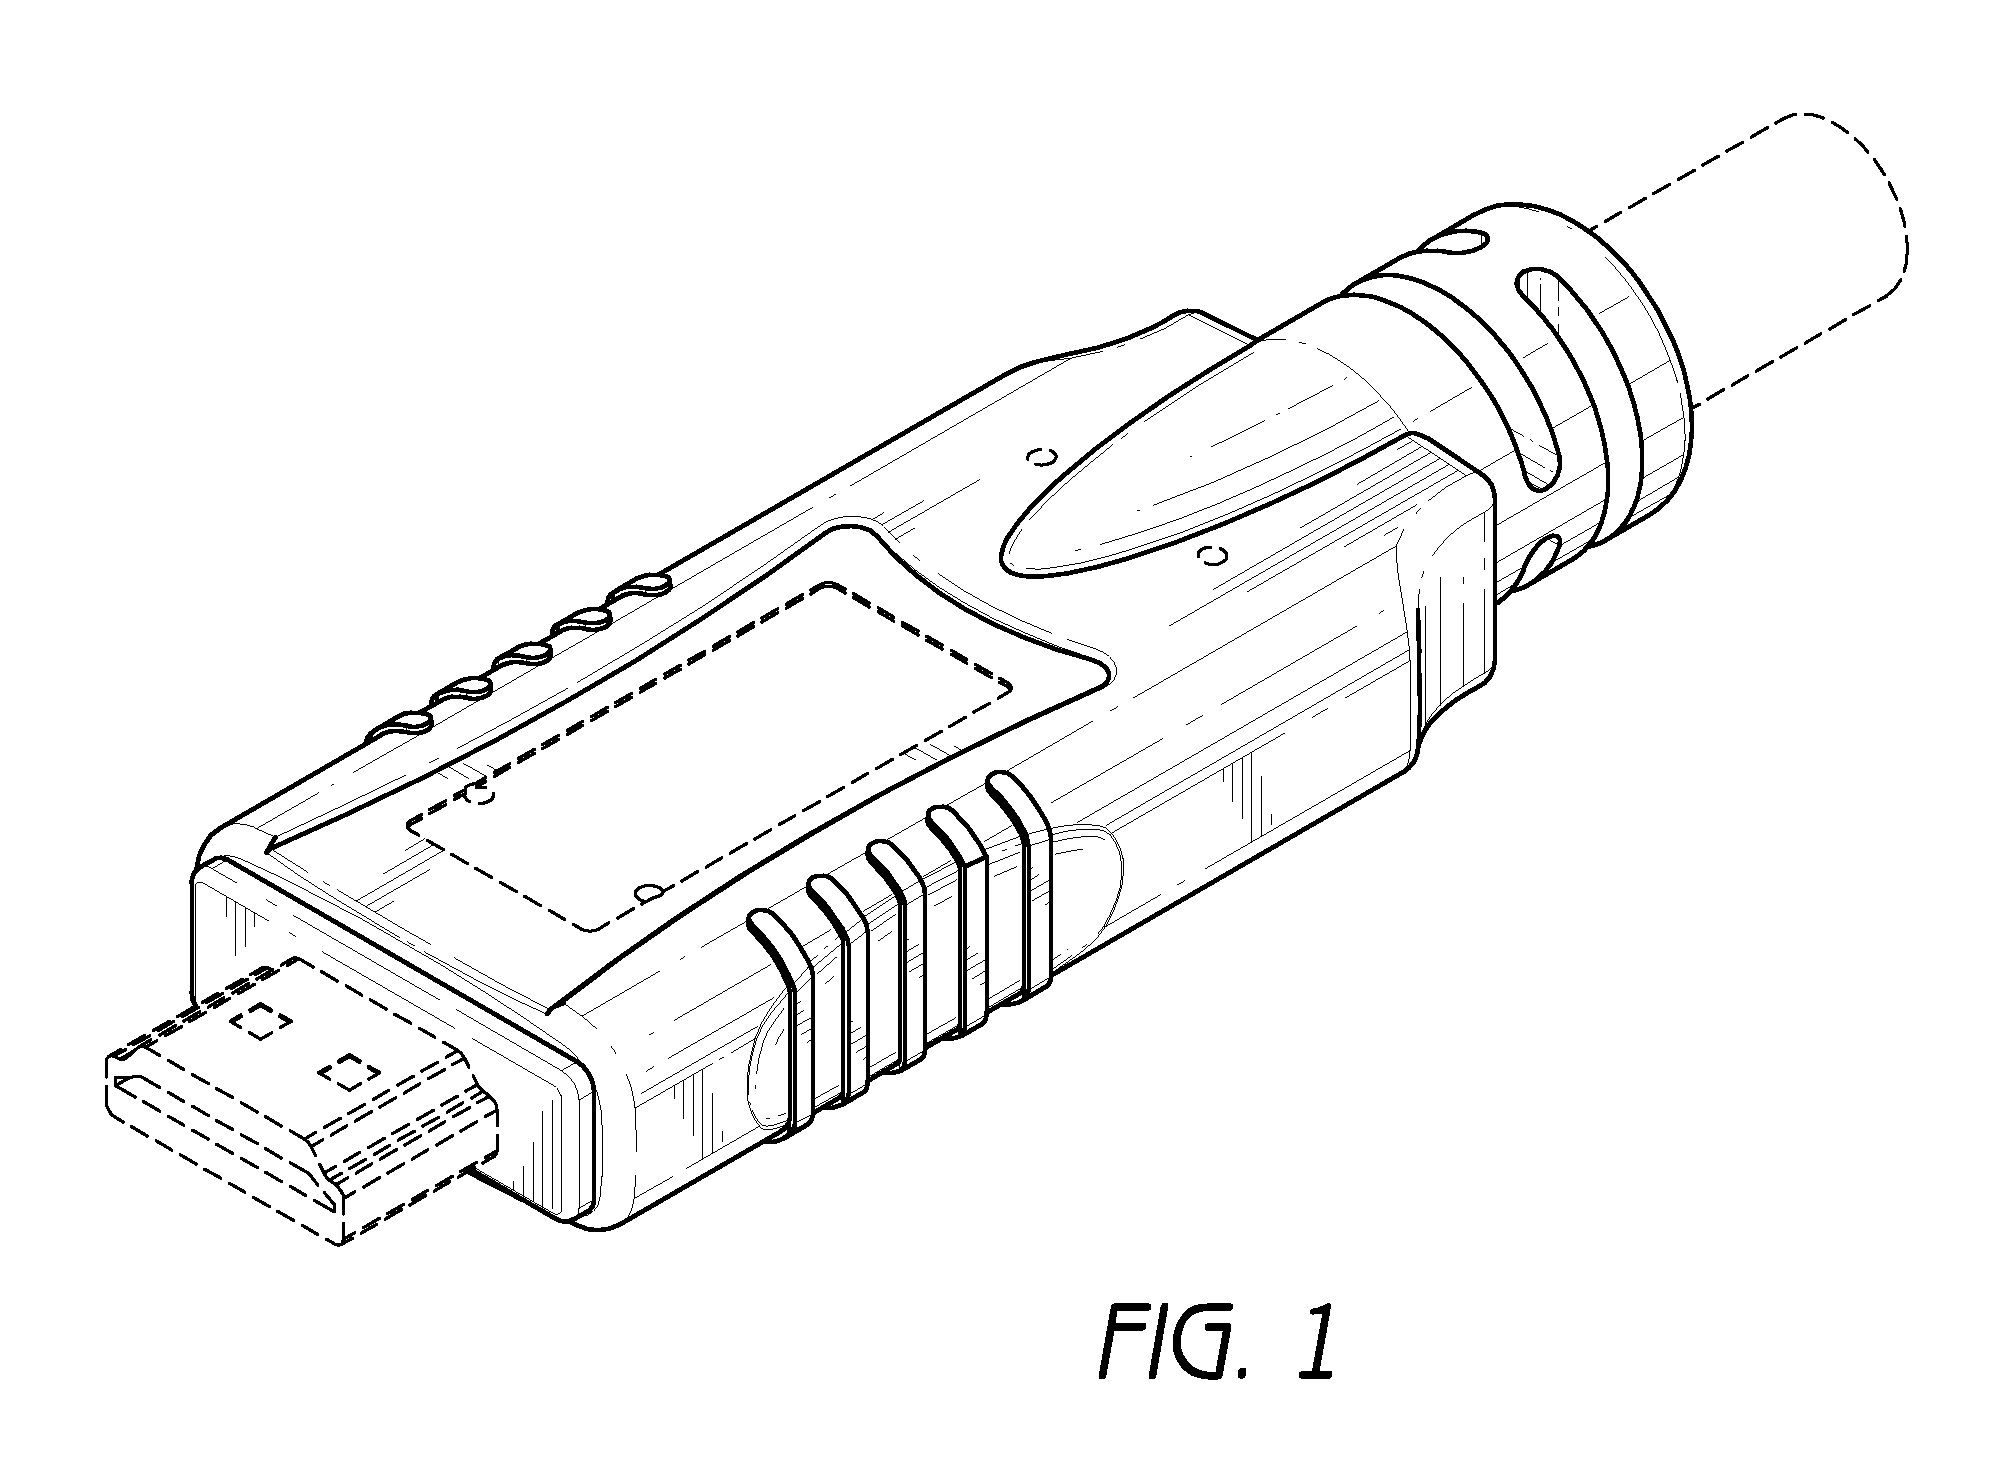 patent usd637159 - hdmi cable connector